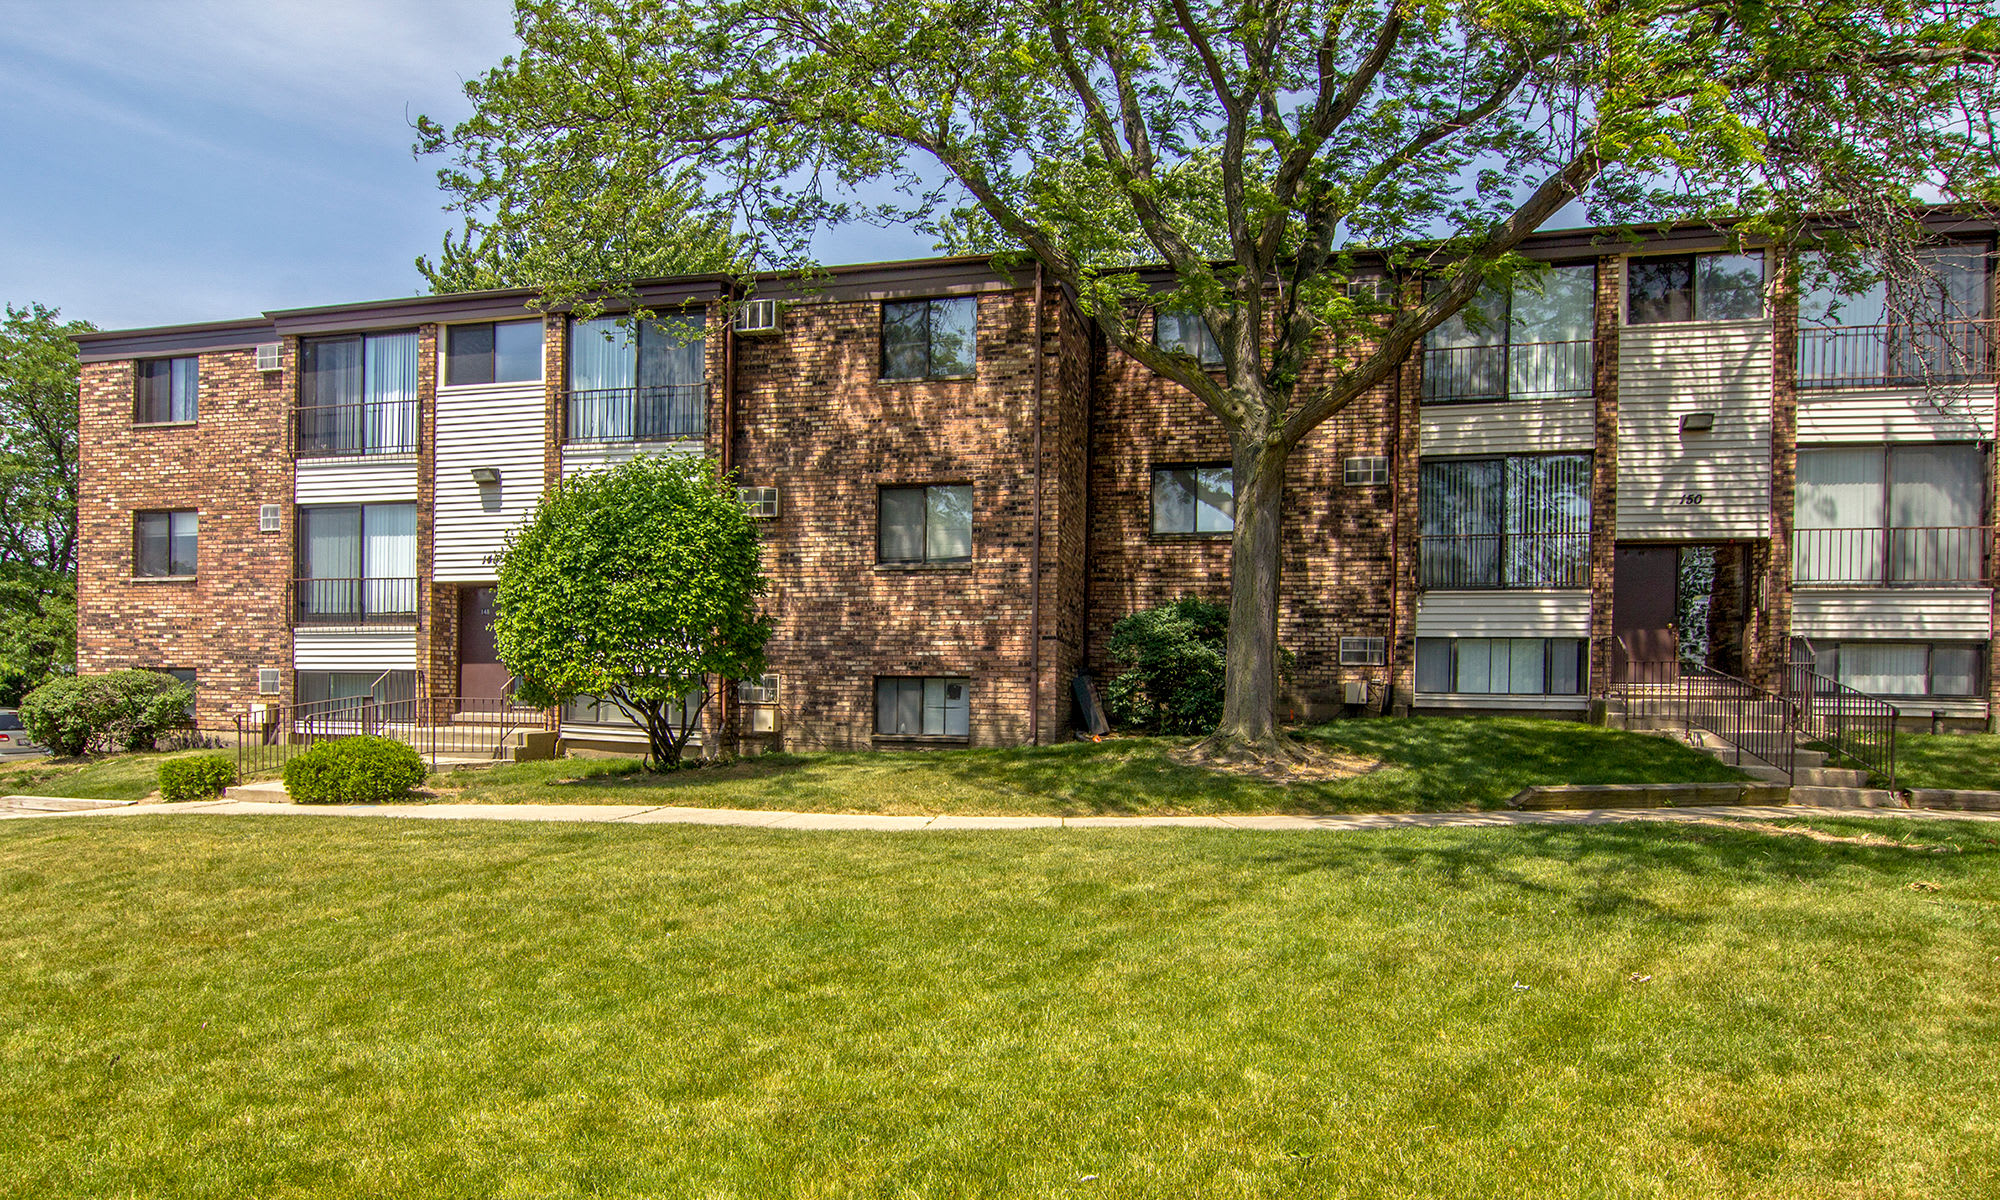 Apartments in Glendale Heights, IL